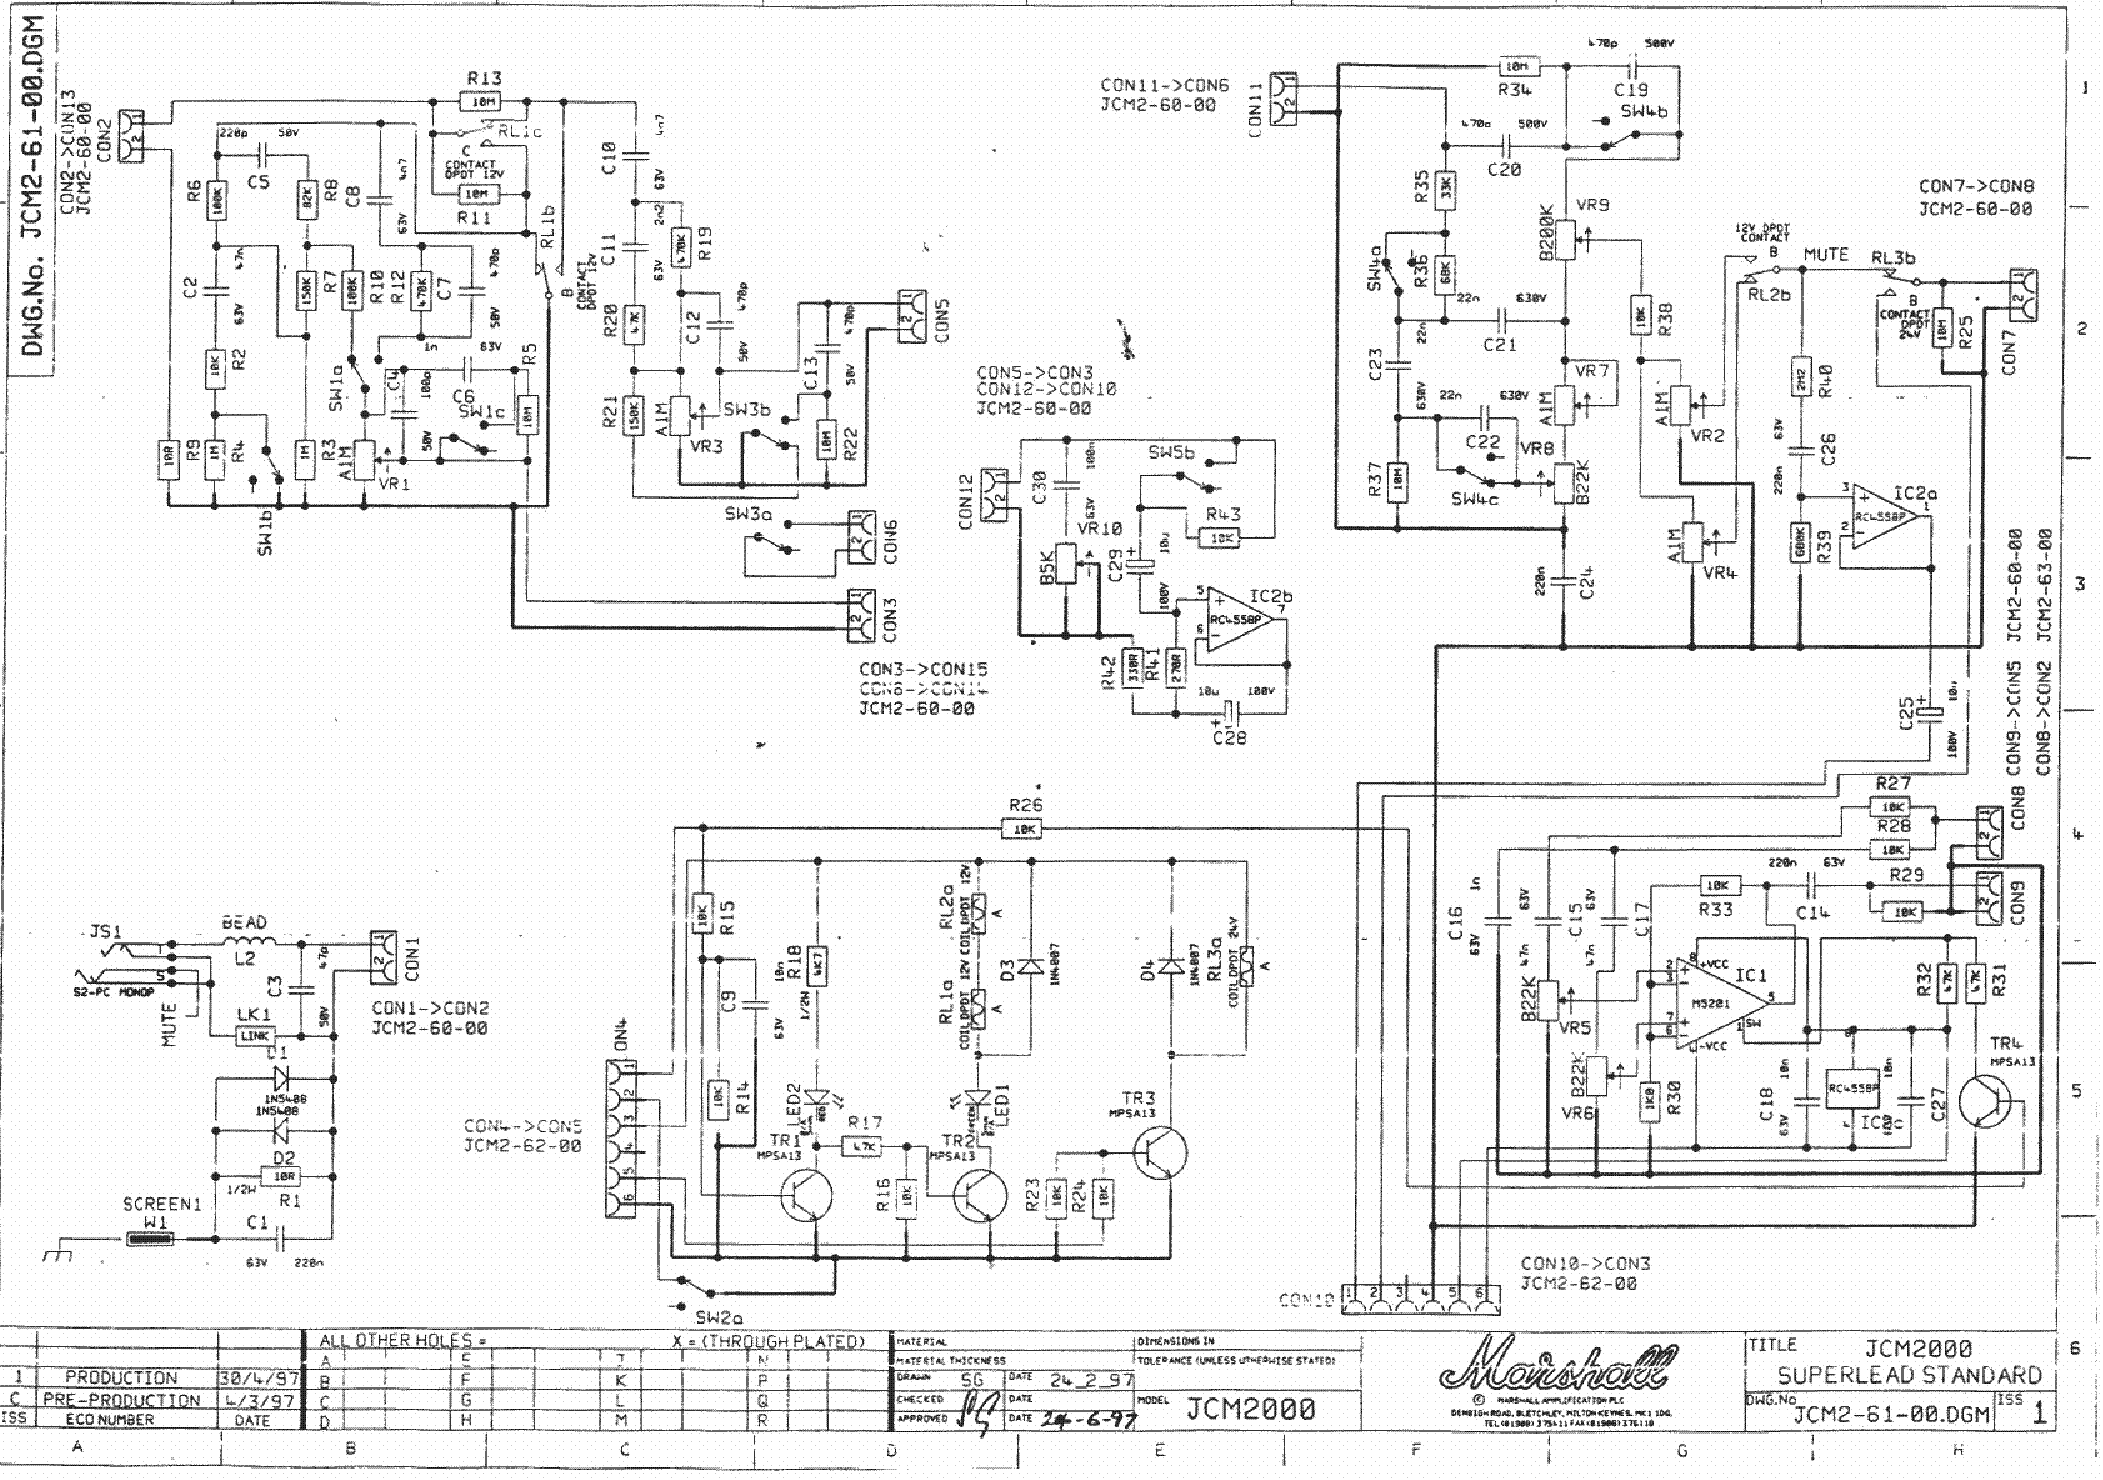 marshall_jcm2000_100w_dsl100.pdf_1?resize\\\\\\\\\\\\\\\\\\\\\\\\\\\\\\\=2103%2C1480 c6 transmission wiring diagram fuel tank wiring diagram, a c e4od wiring diagram at nearapp.co